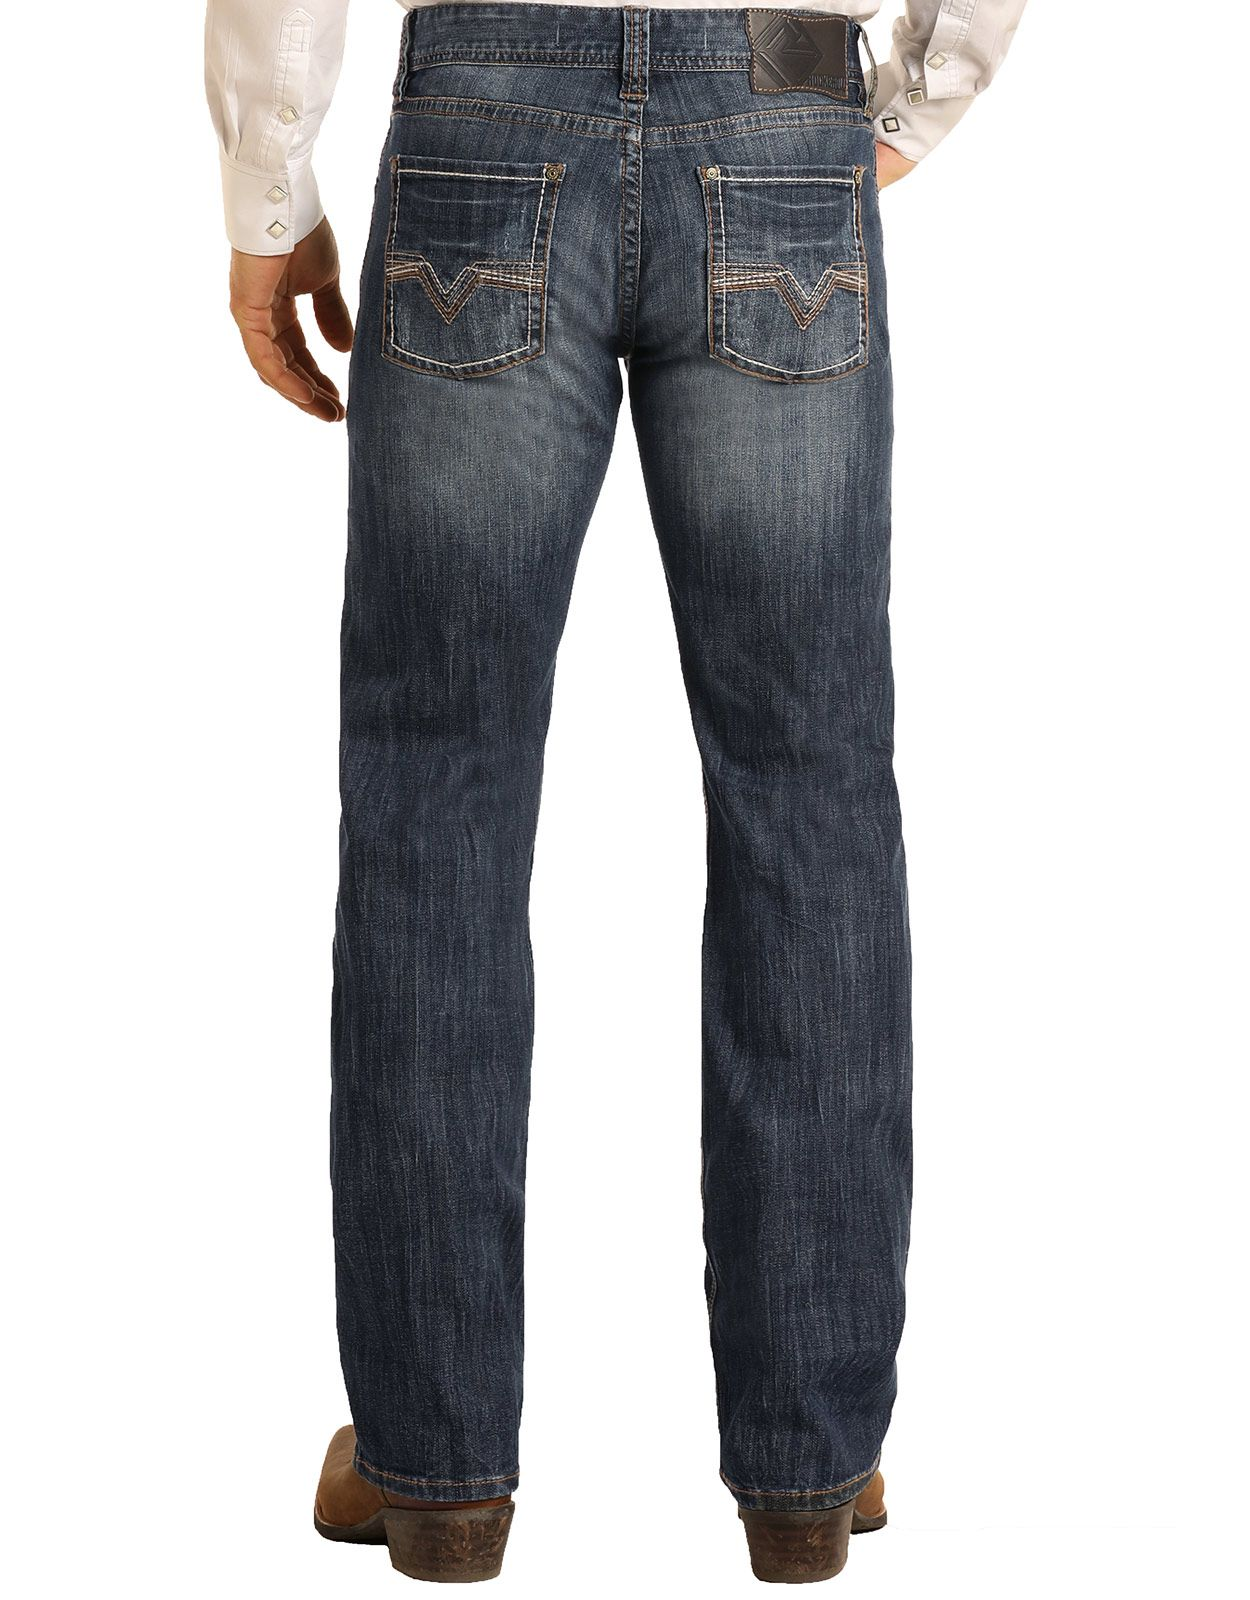 Rock & Roll Denim Men's Reflex Pistol Low Rise Regular Fit Straight Leg Jeans - Dark Vintage